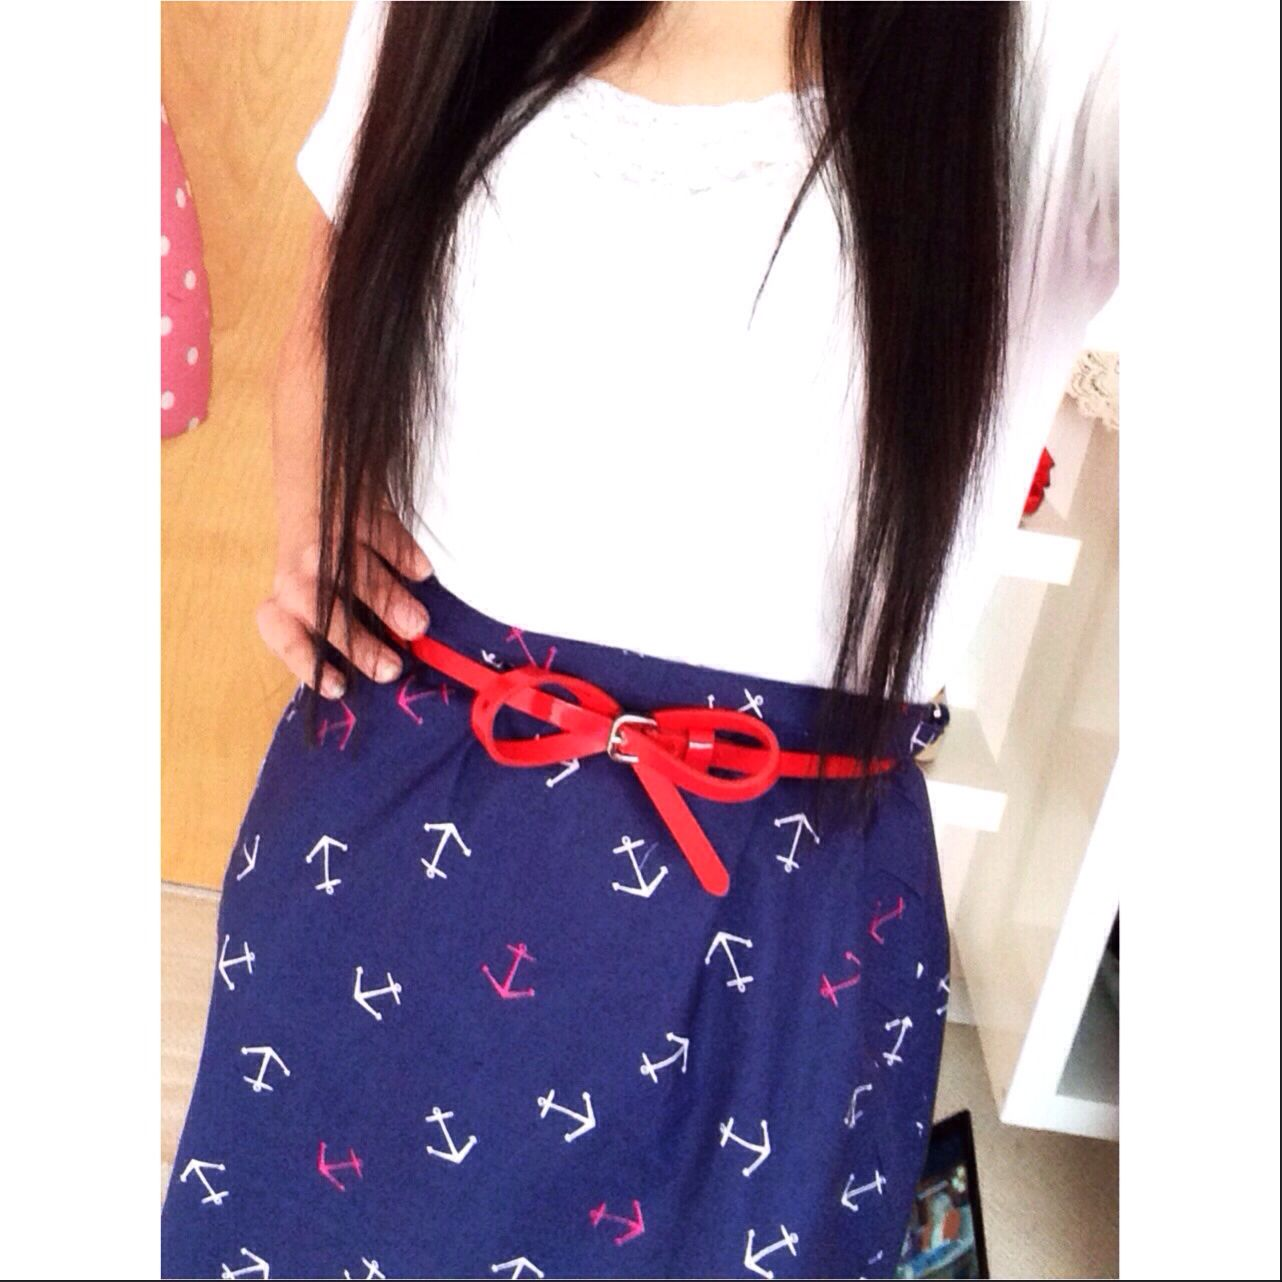 Anchors and Bowss! Follow @Modestlyhot on ig!!